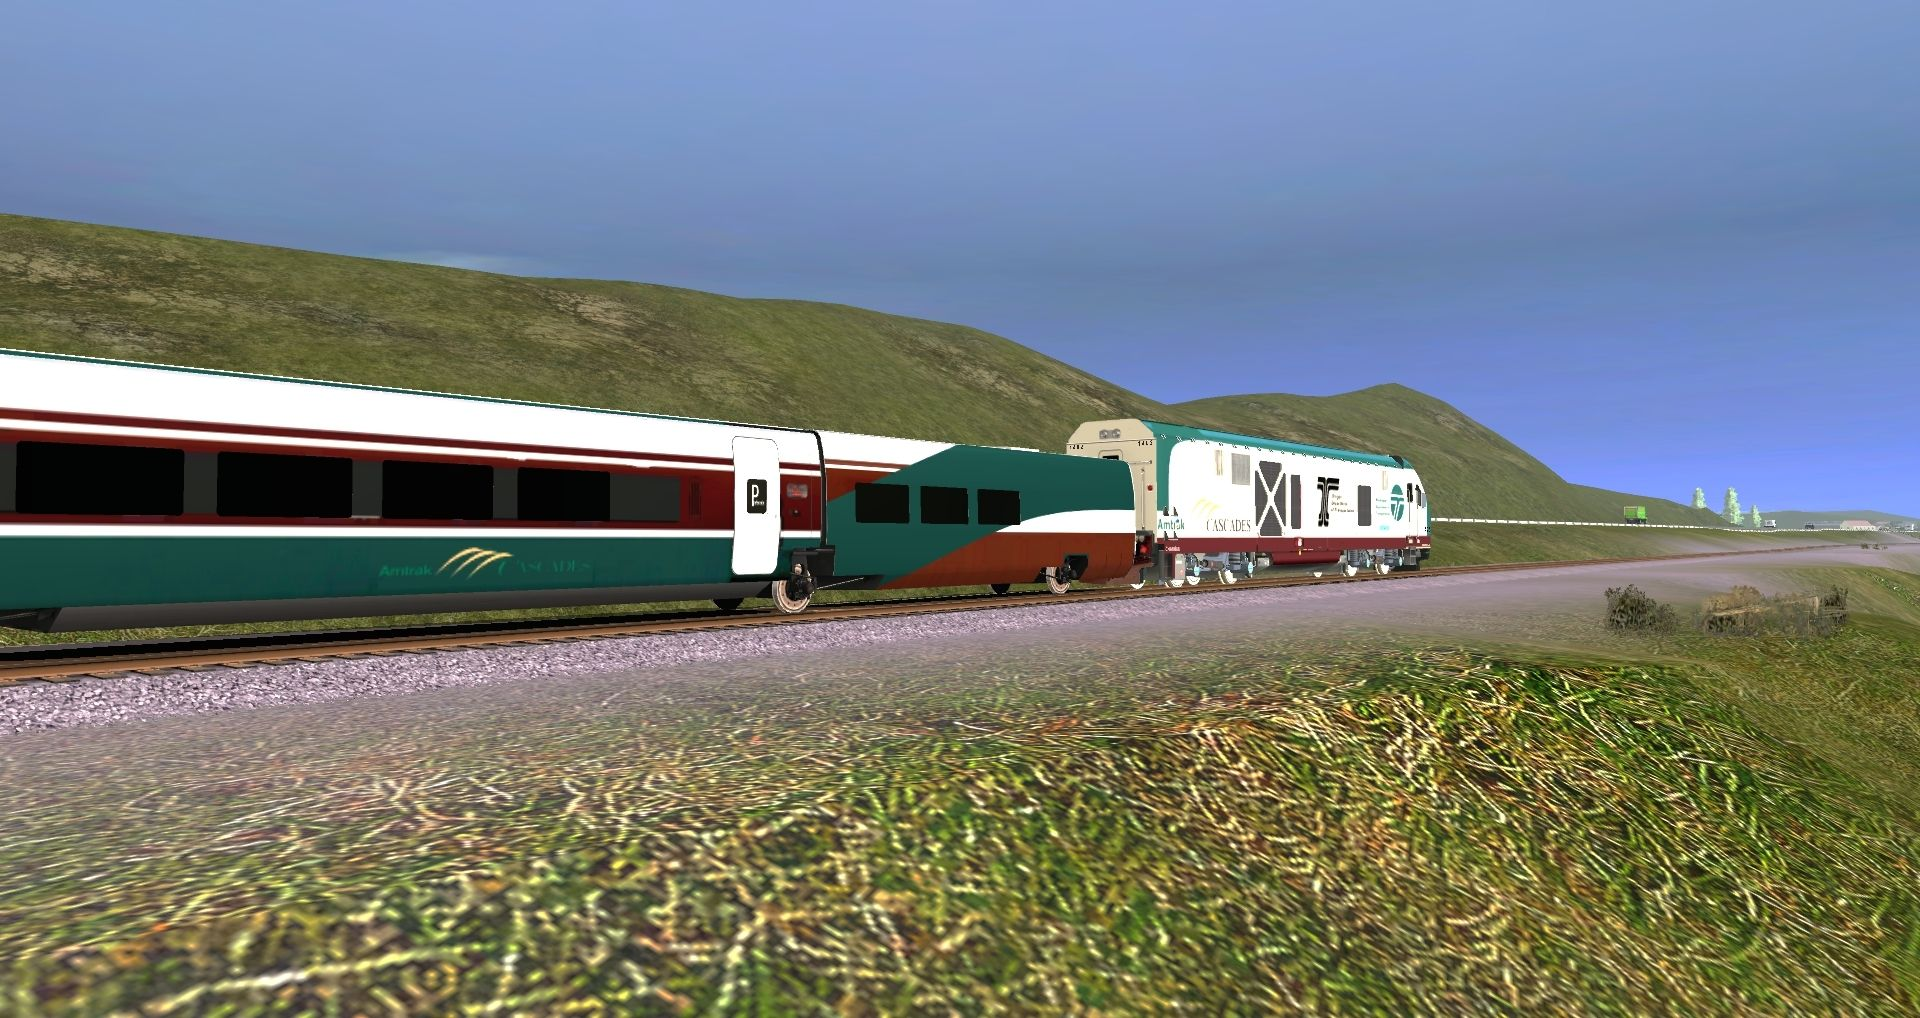 Show off your reskins! [Archive] - Page 27 - Trainz